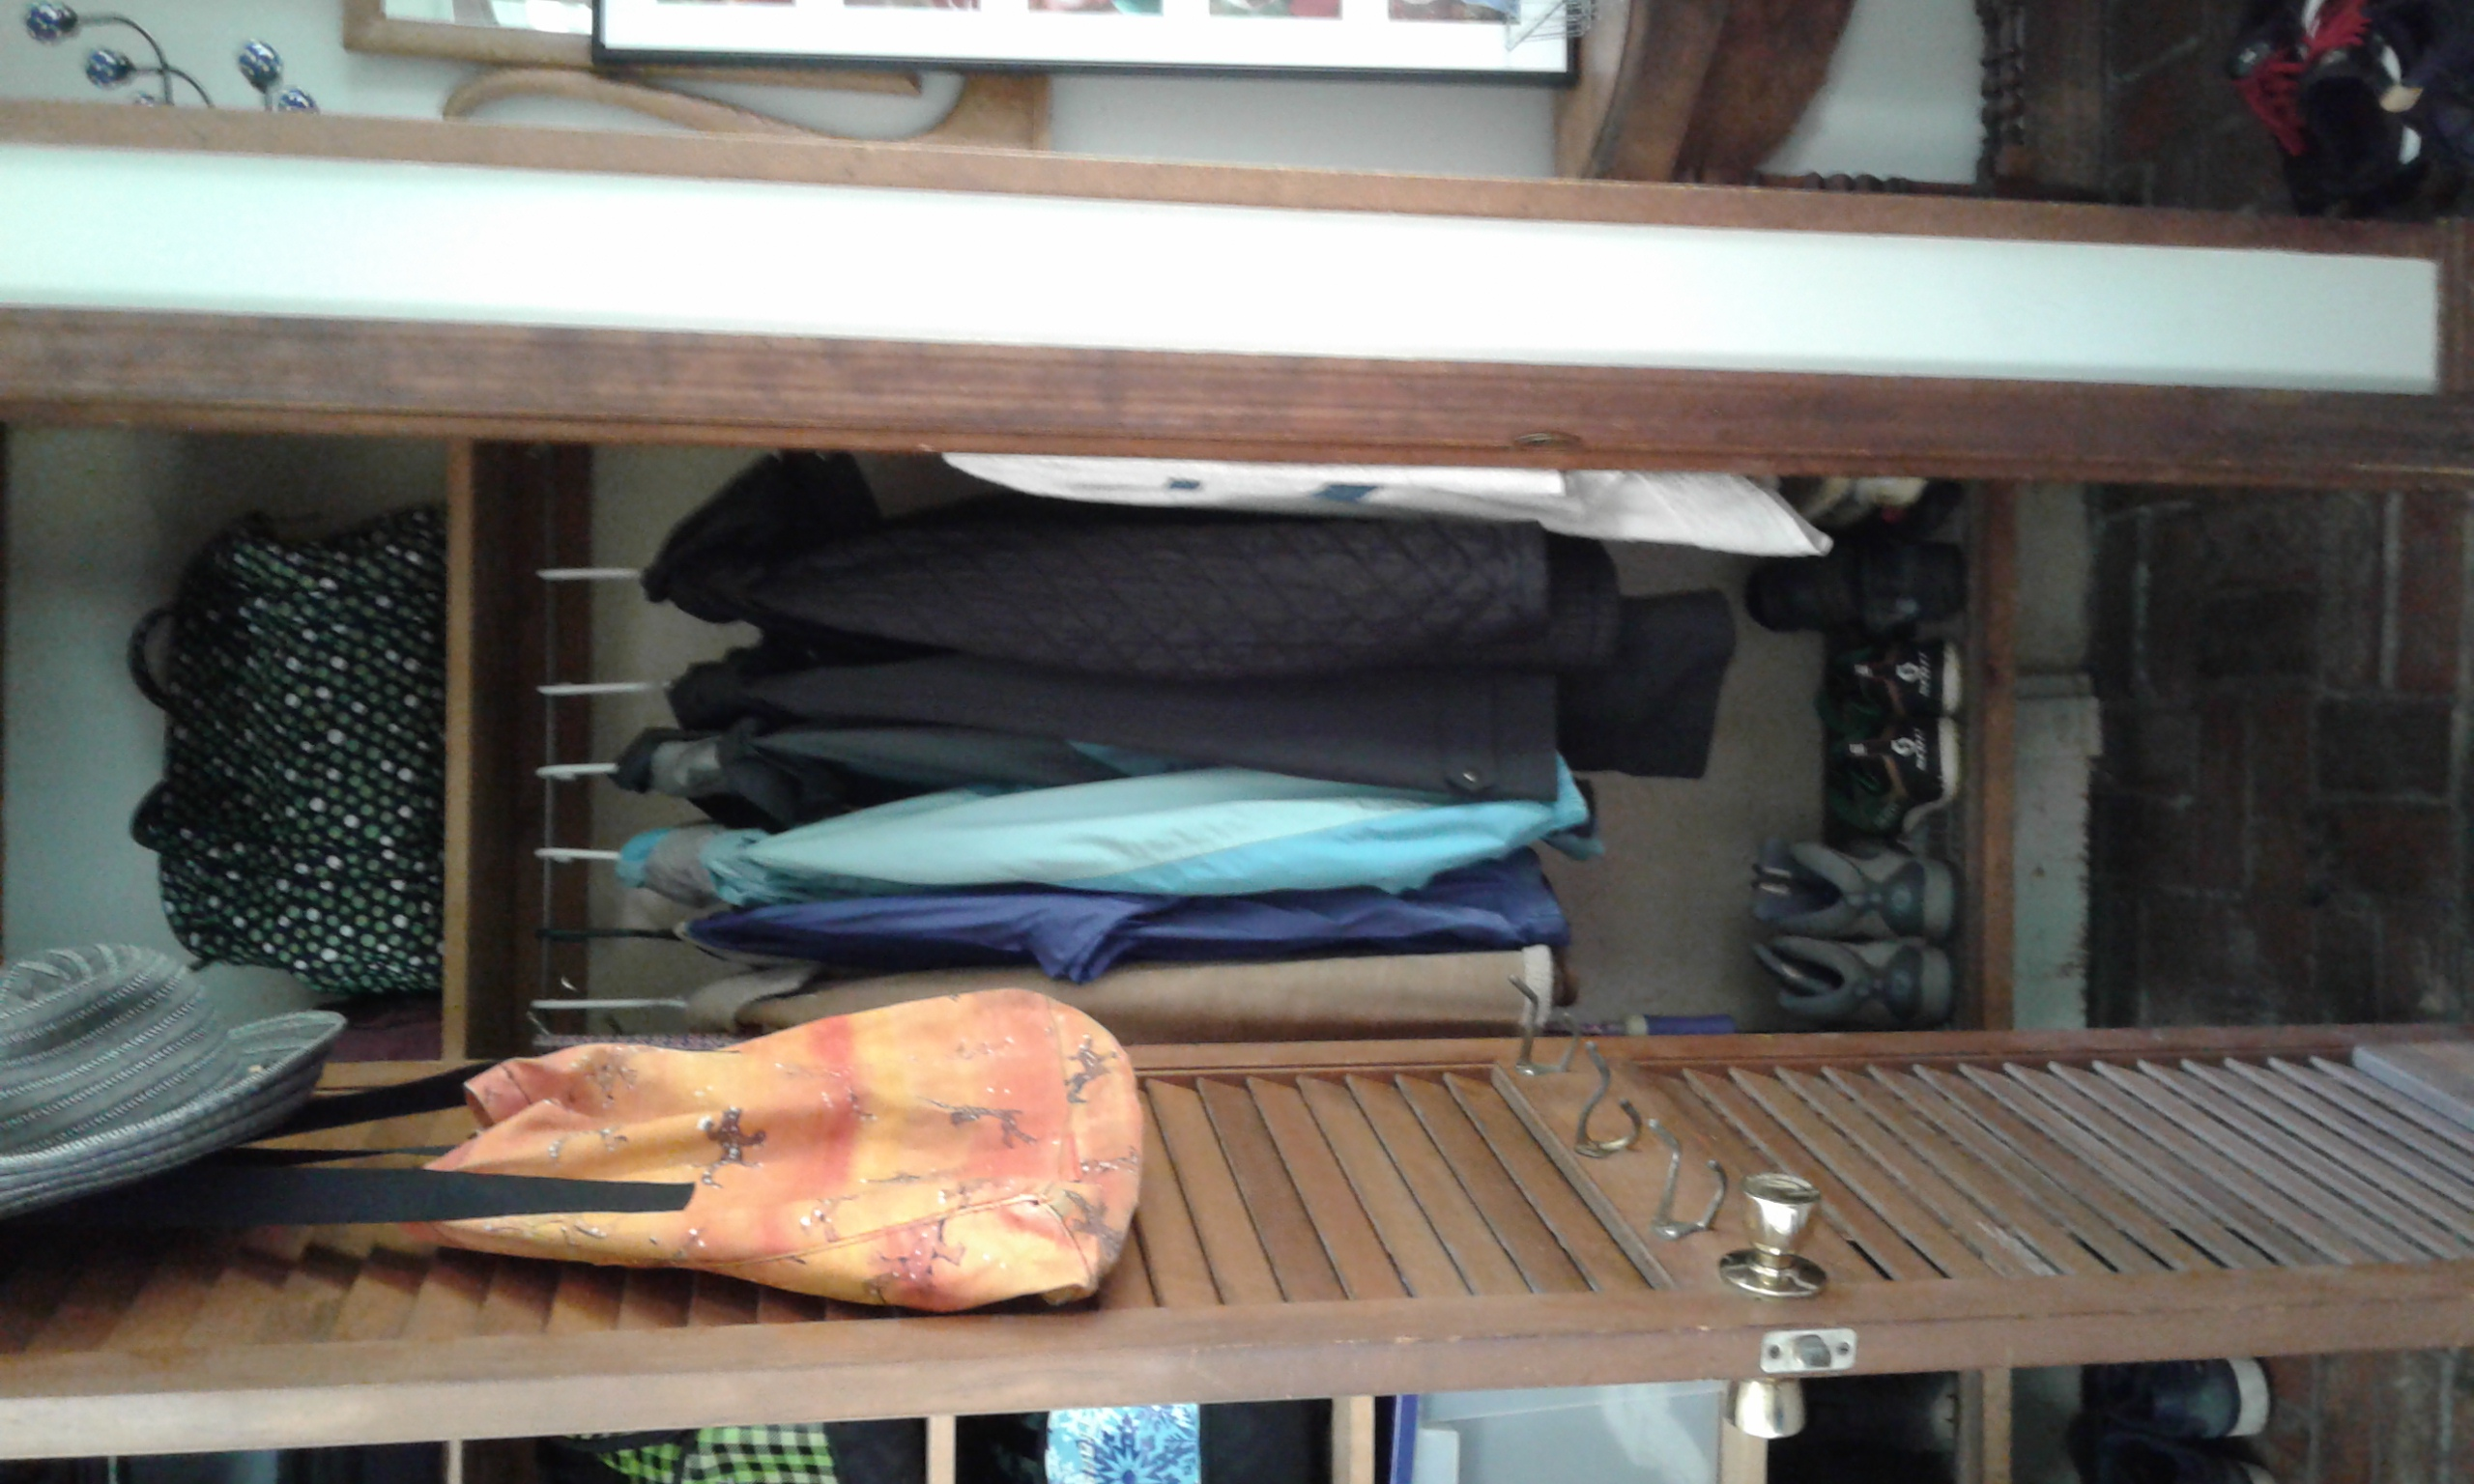 Closet clutter cleared, with more room to use